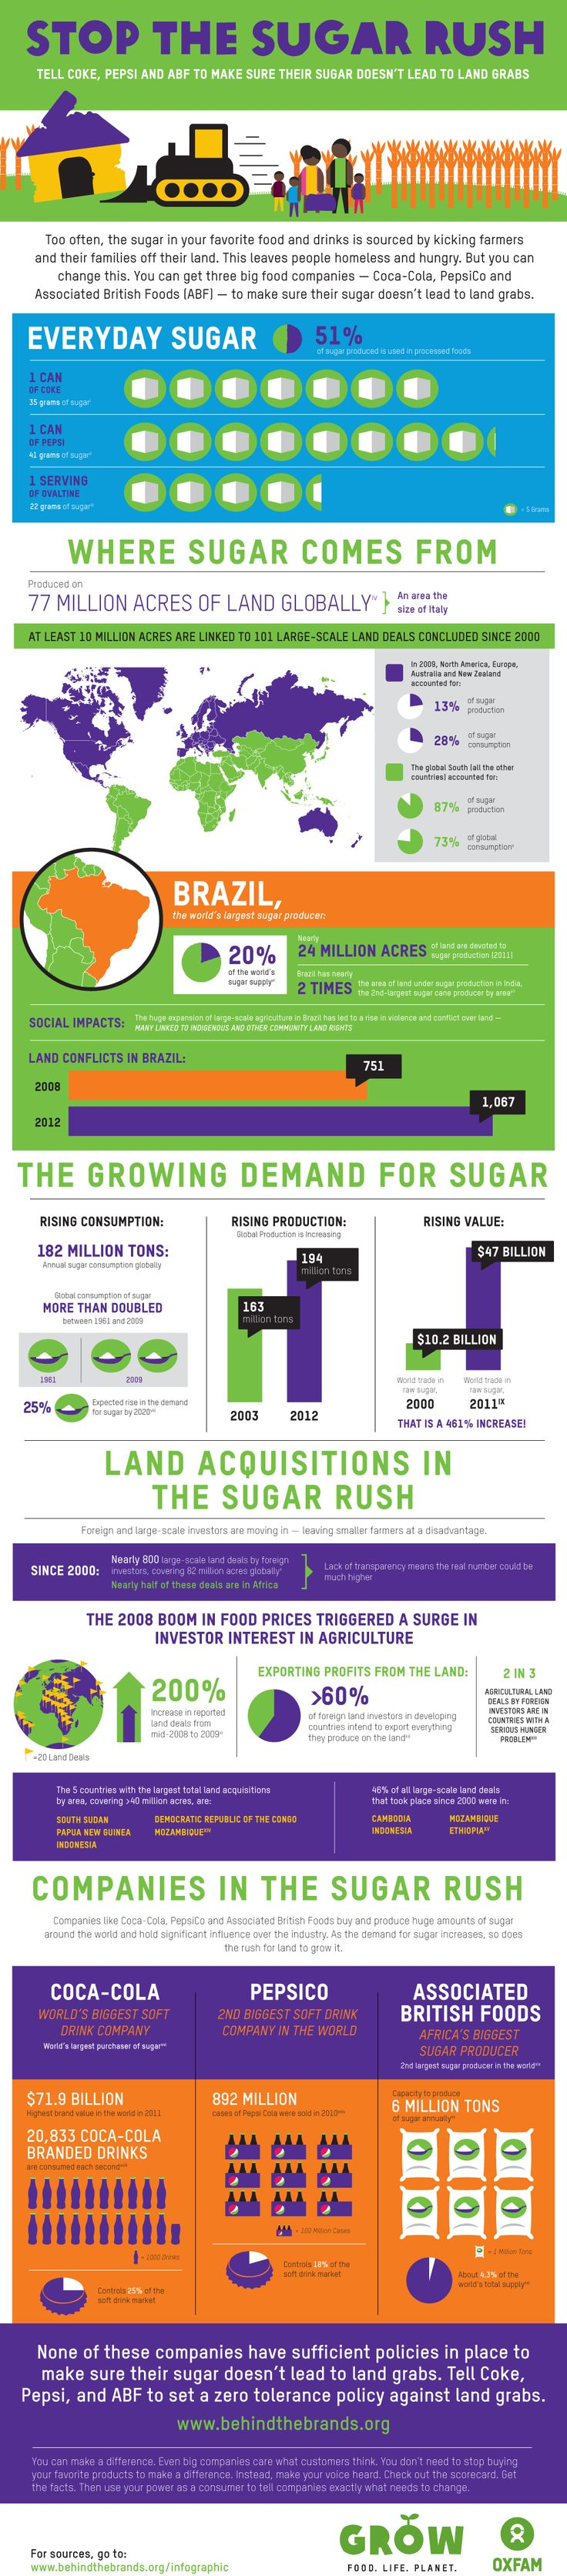 best images about food justice planet how sugar in your favorite foods and drinks leads to land grabs that leave poor farmers